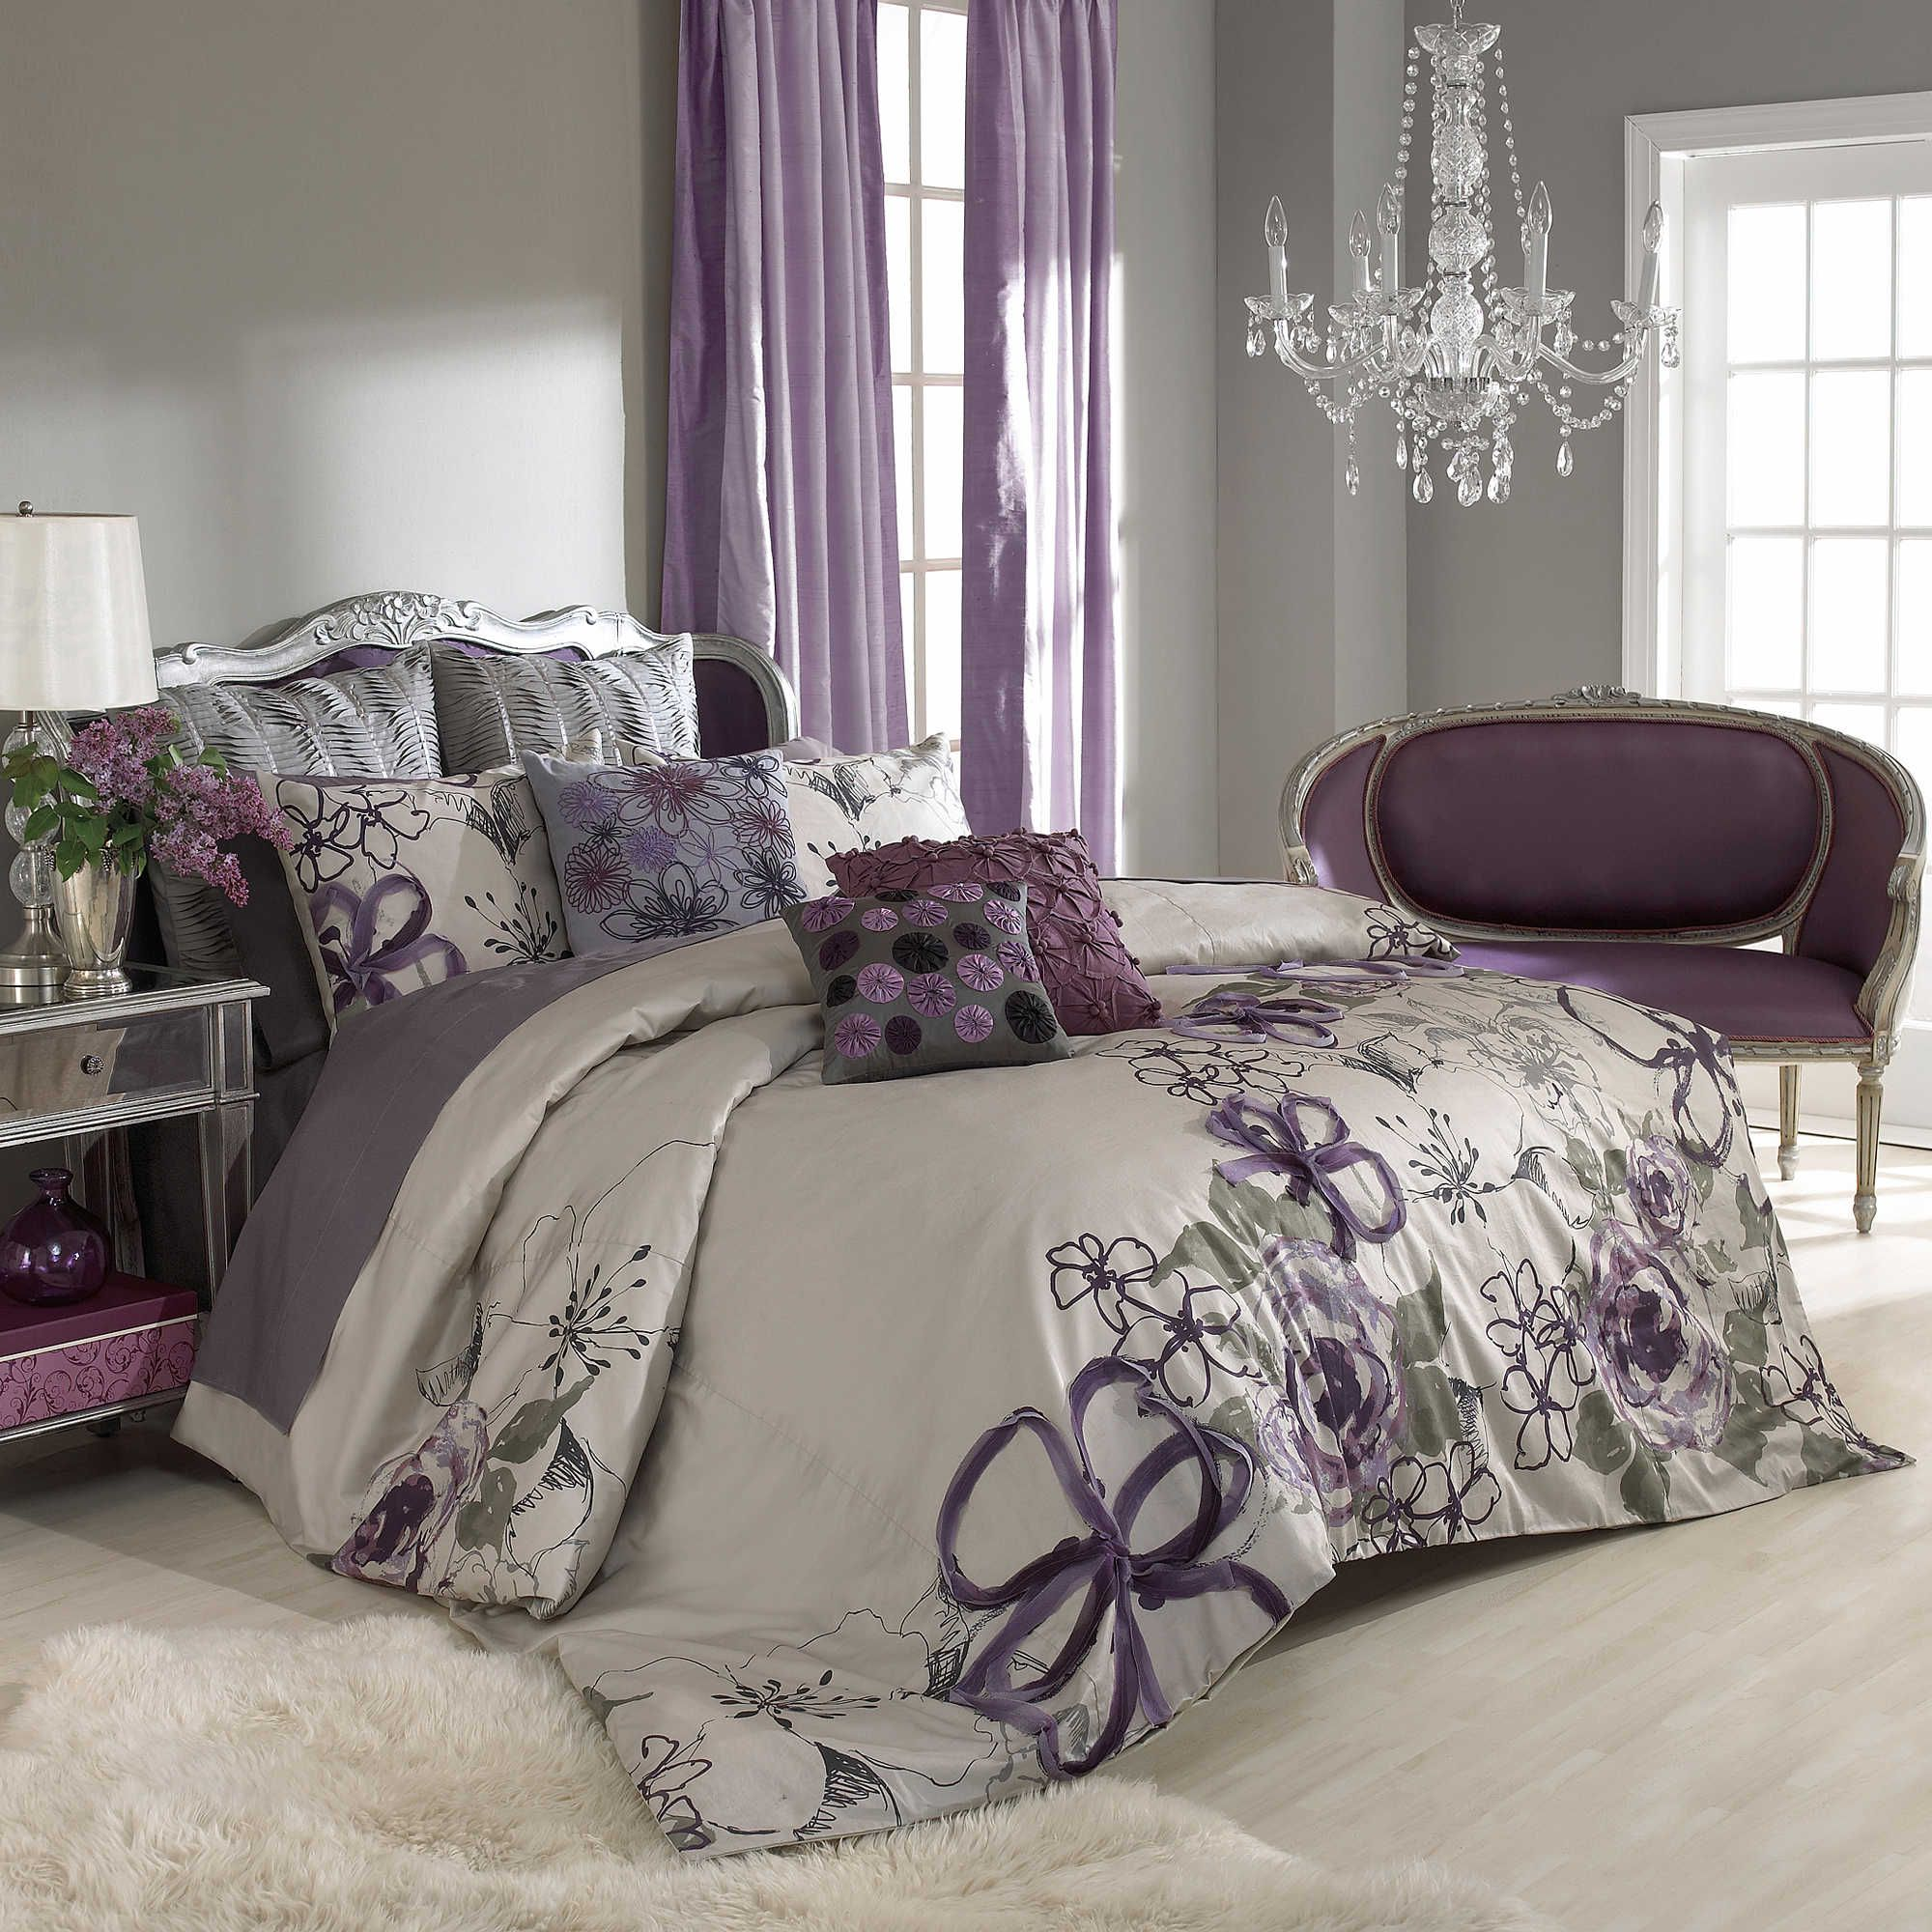 Provence Duvet Cover Set ~ At Bedbathandbeyond.com